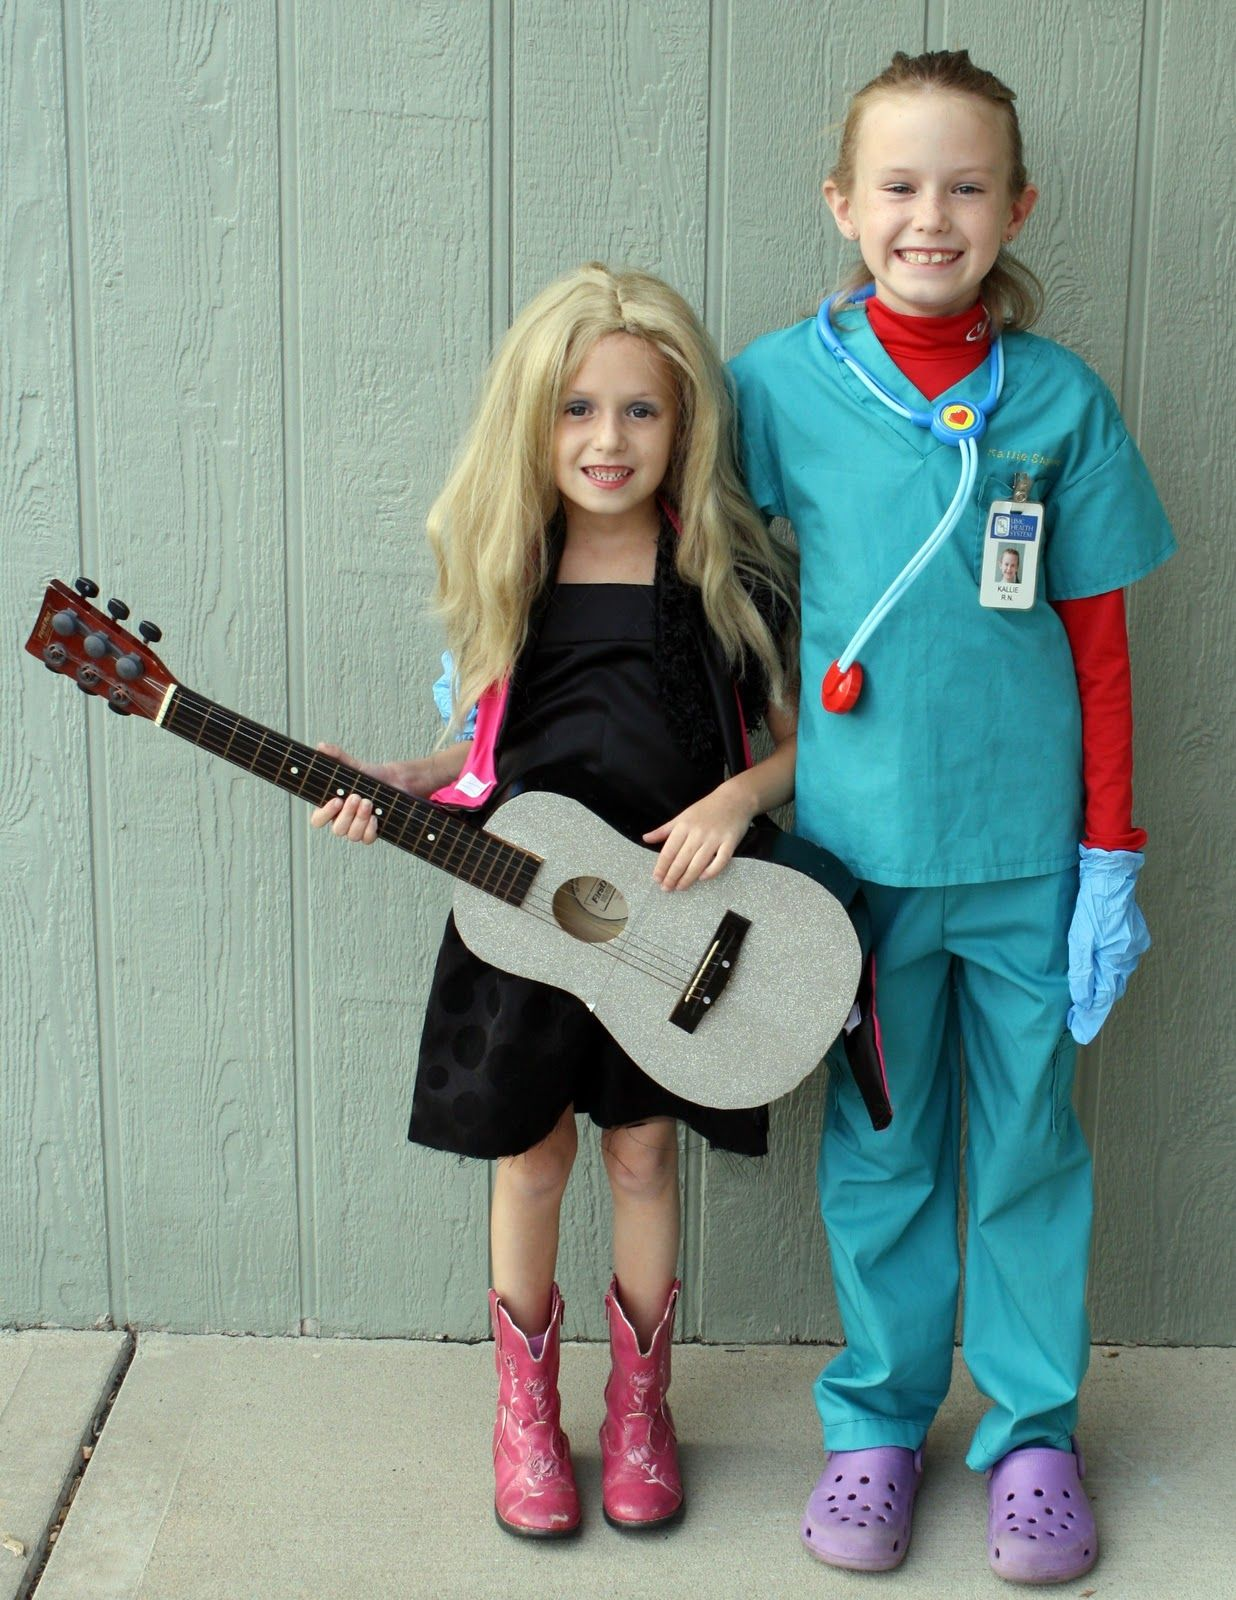 taylor swift halloween costumes for tweens can years taylor swift costume ideas halloween - What Was Taylor Swift For Halloween